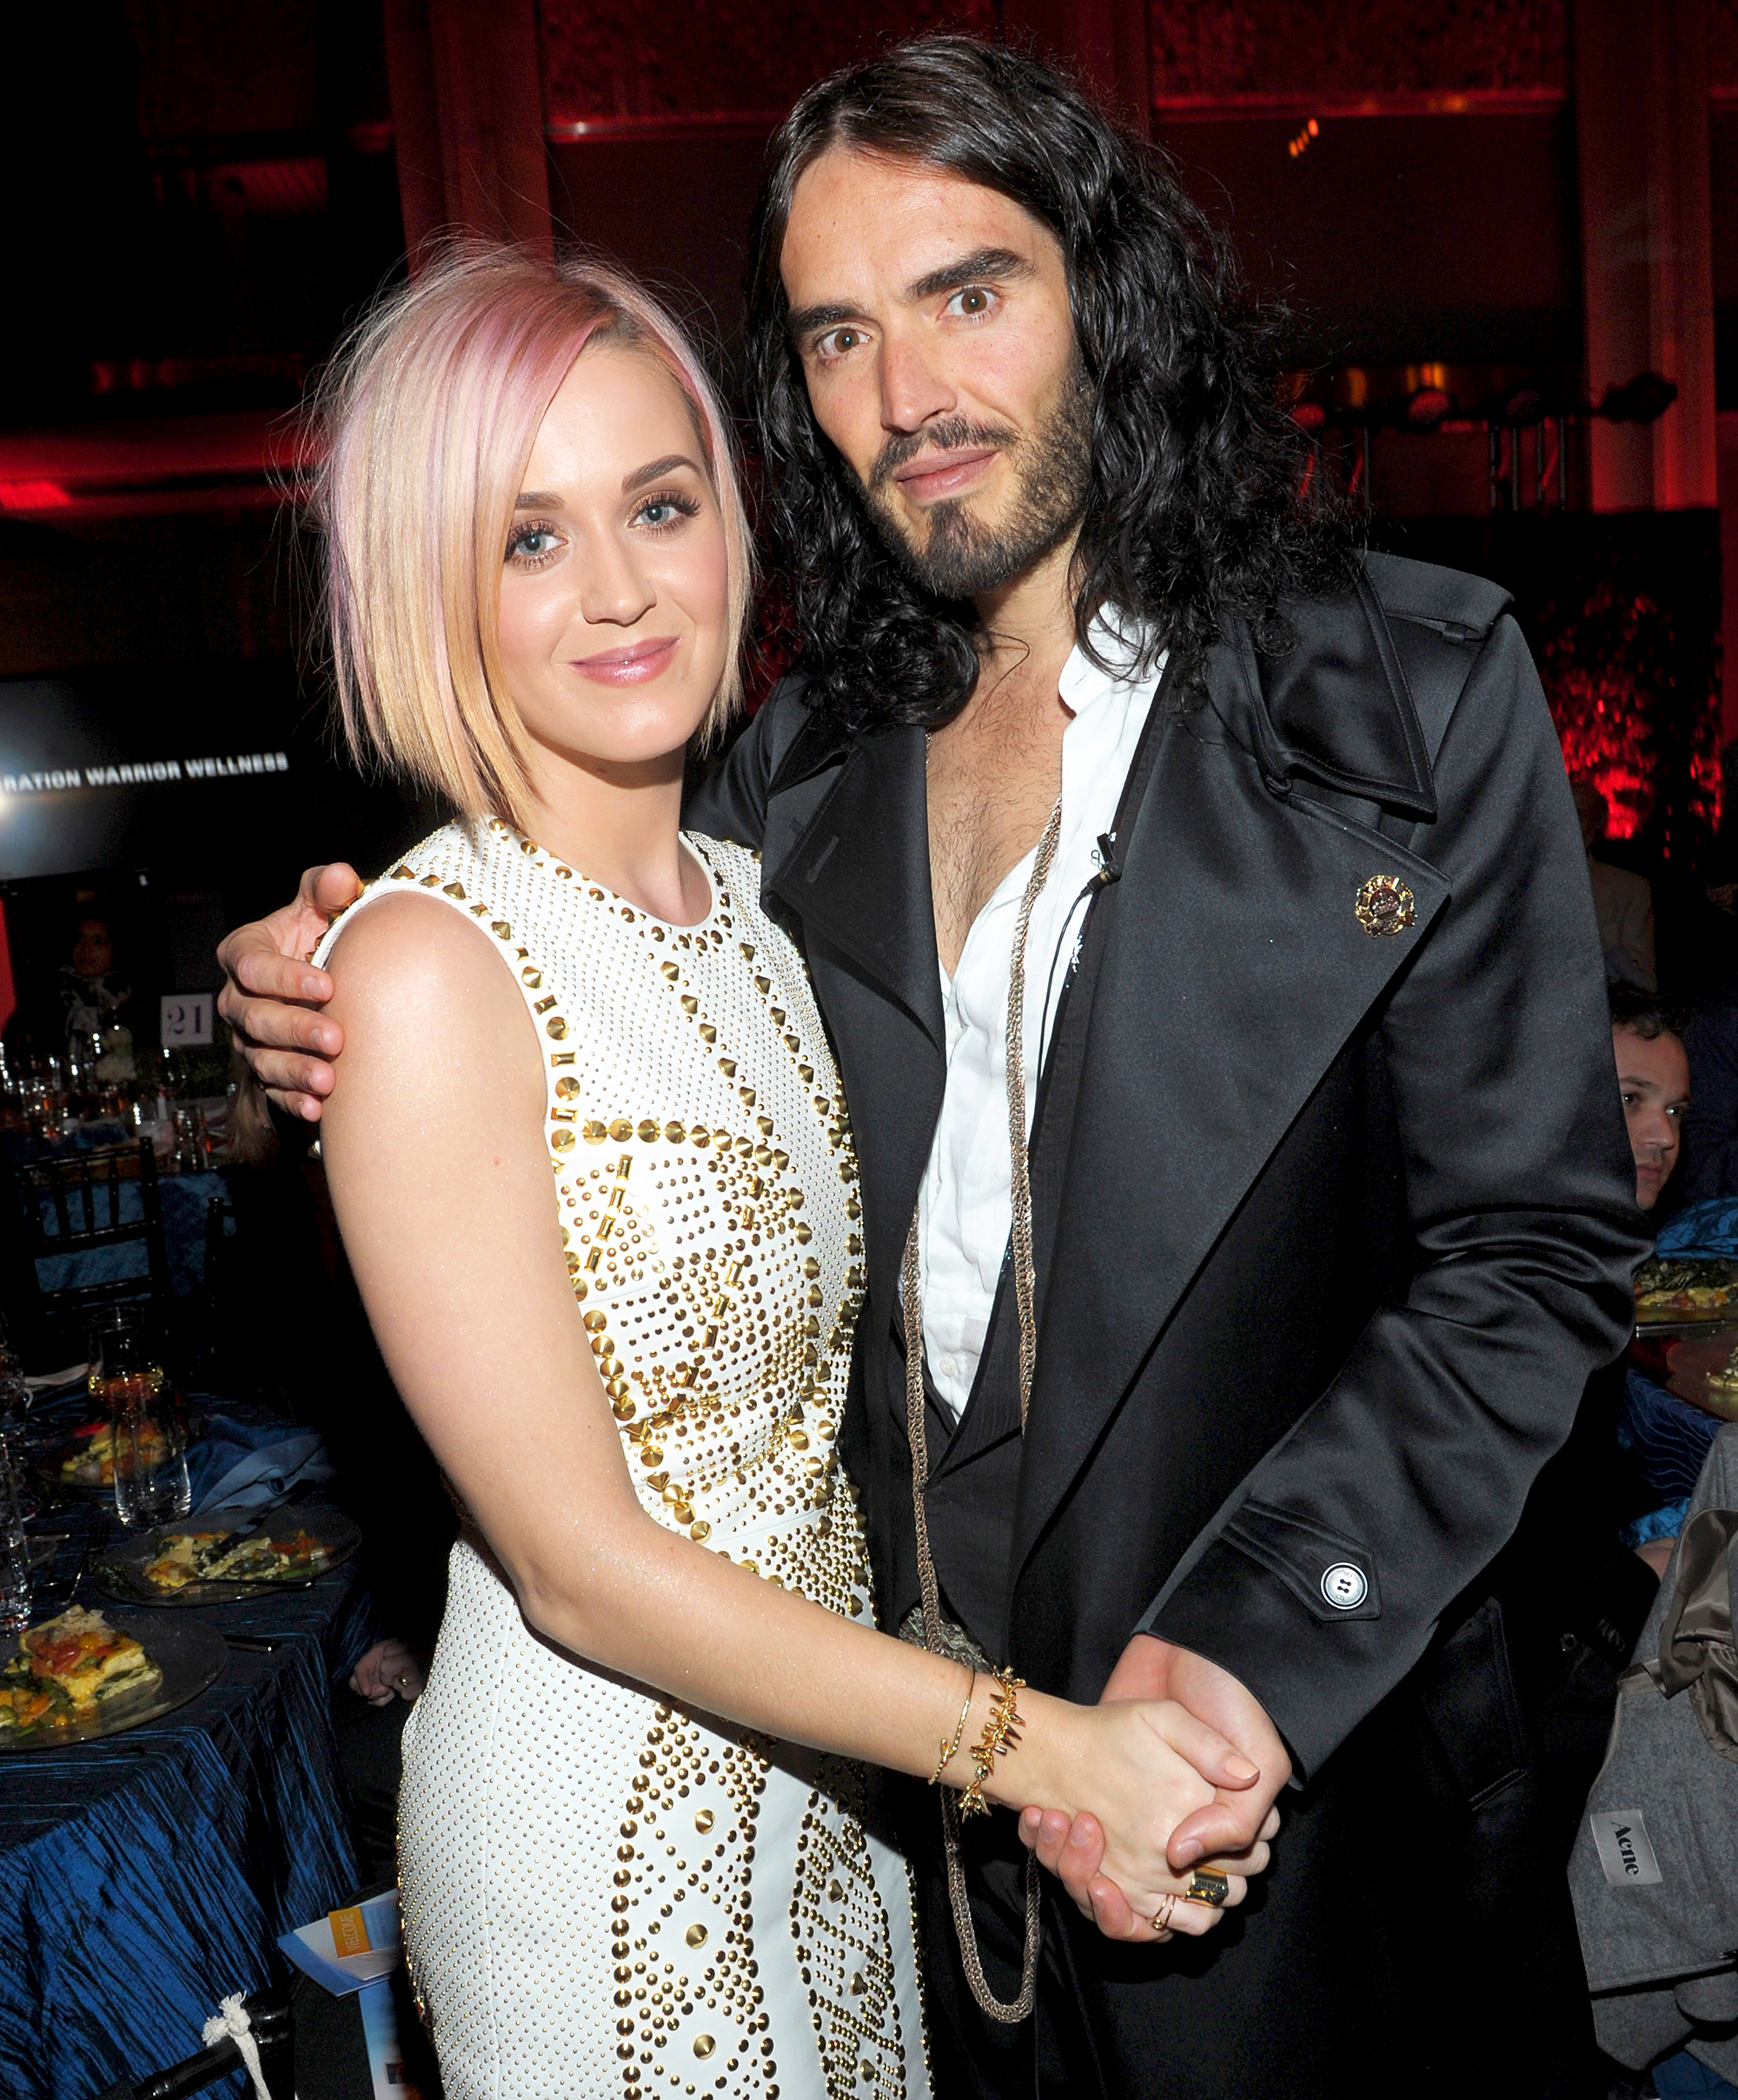 Russell brand and katy perry fight all time